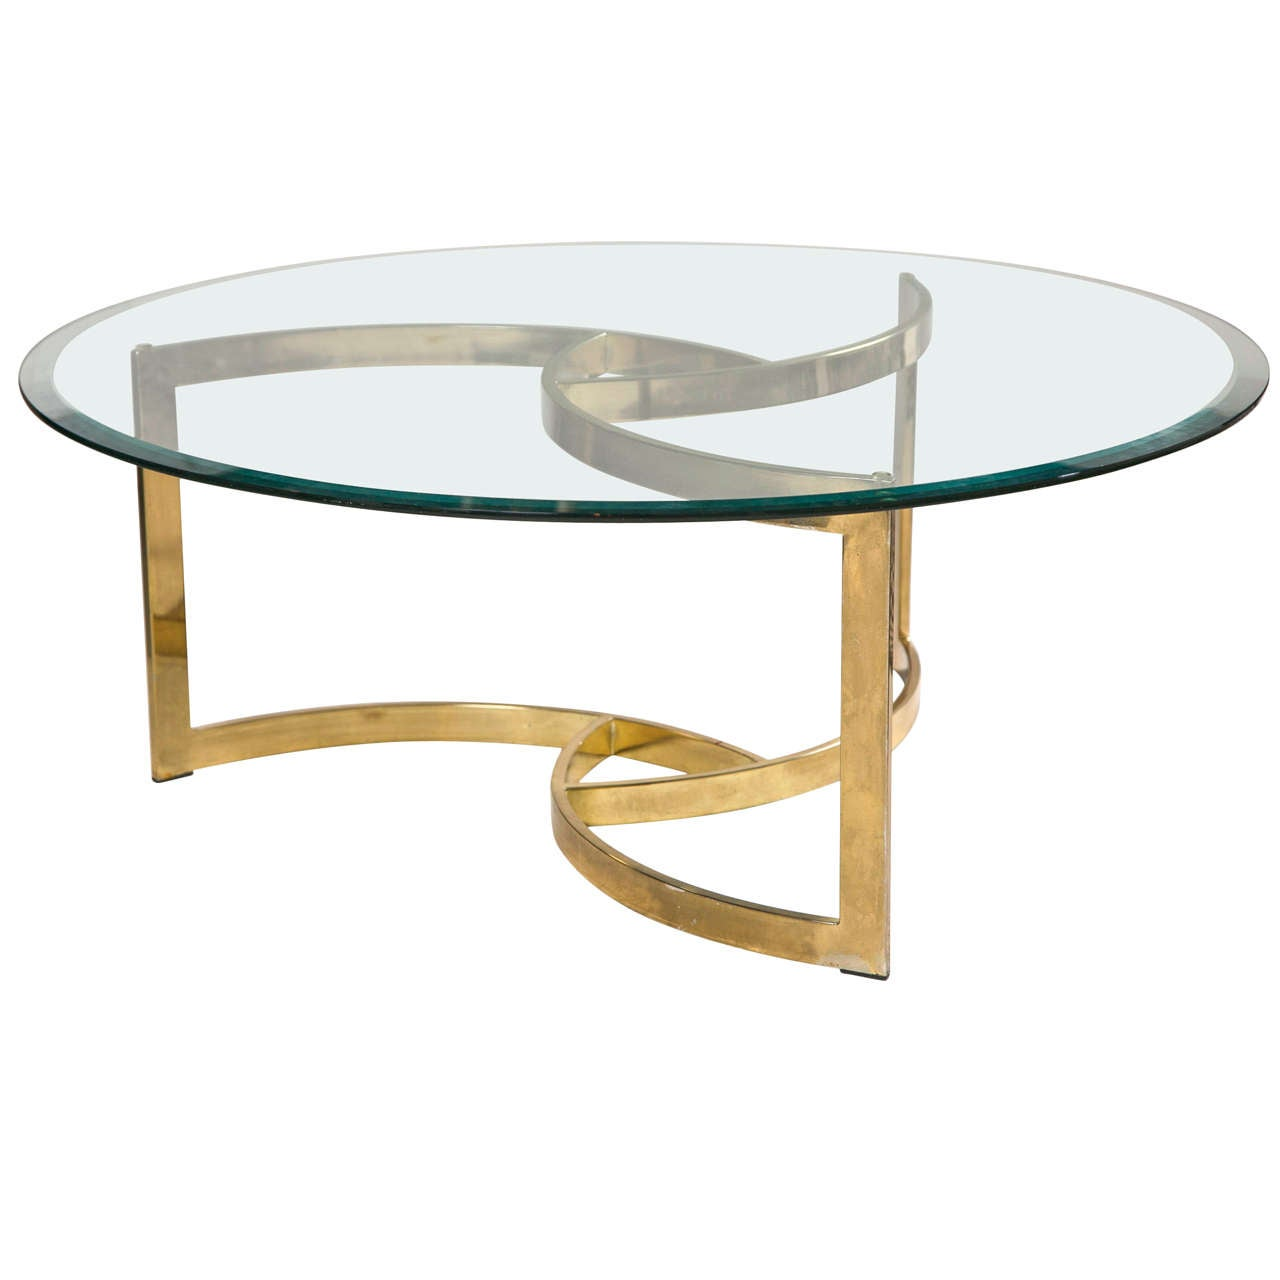 Superior Mid Century Brass Swirl Base With Round Glass Top Coffee Table For Sale